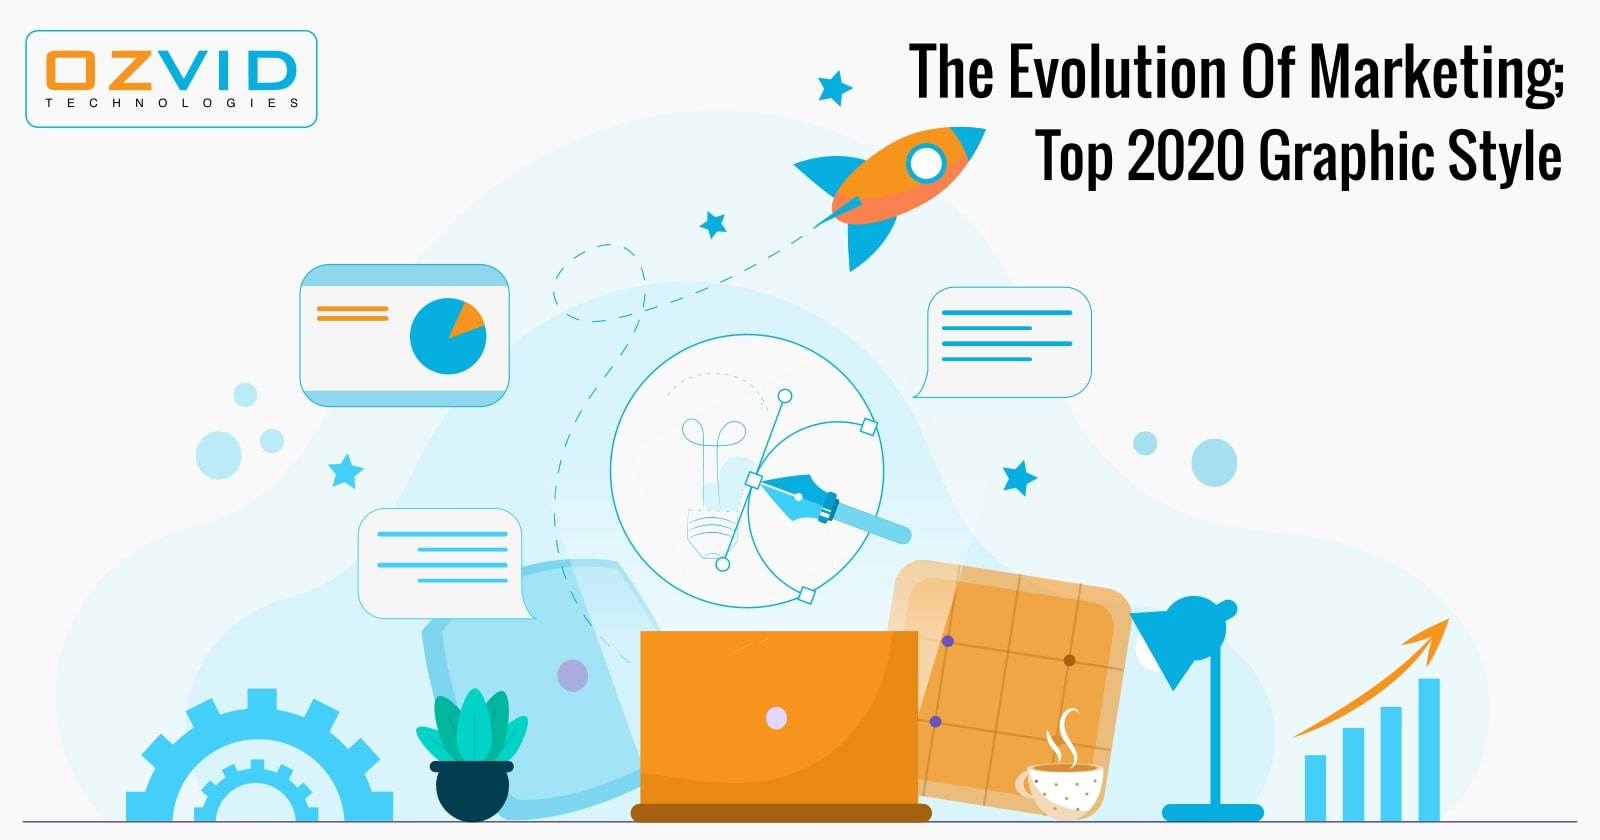 The Evolution Of Marketing; Top 2020 Graphic Style